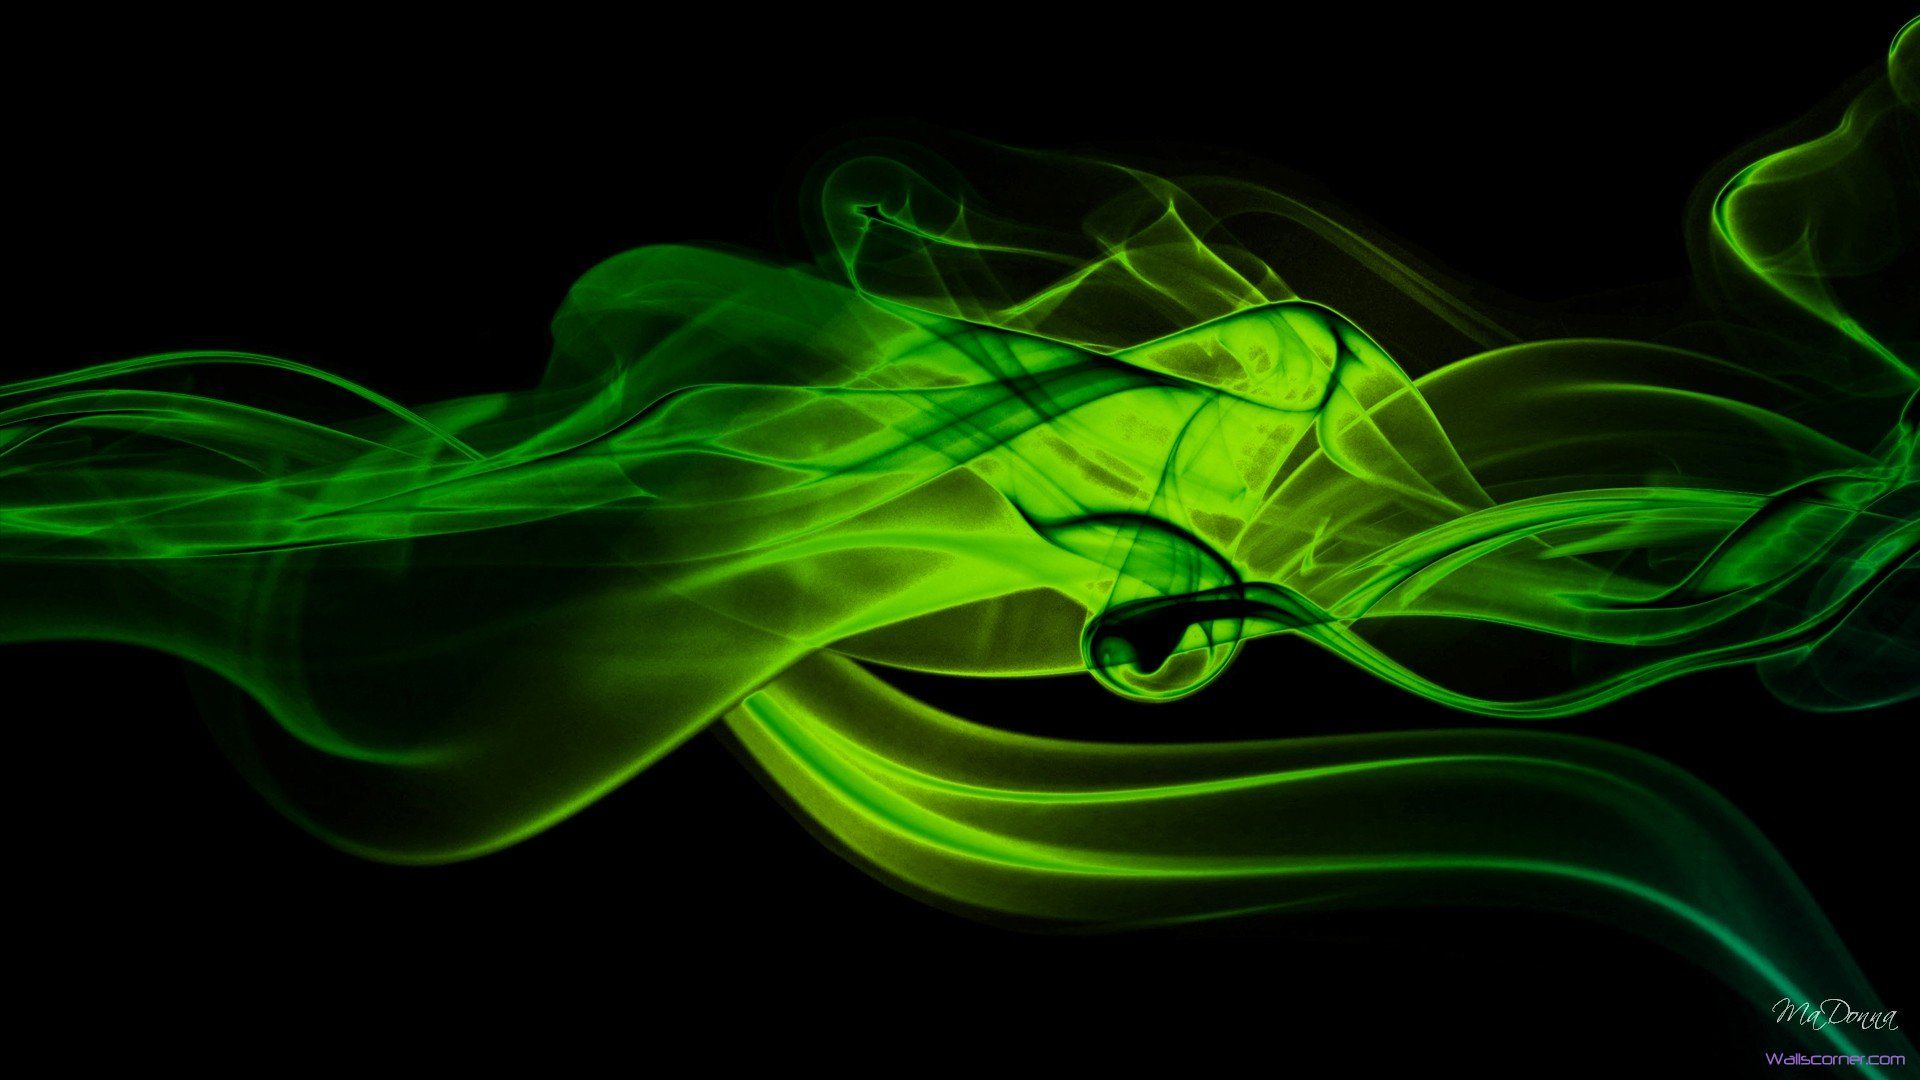 Green-smoke-abstract-HD-1920x1080.jpg (1920×1080 ...